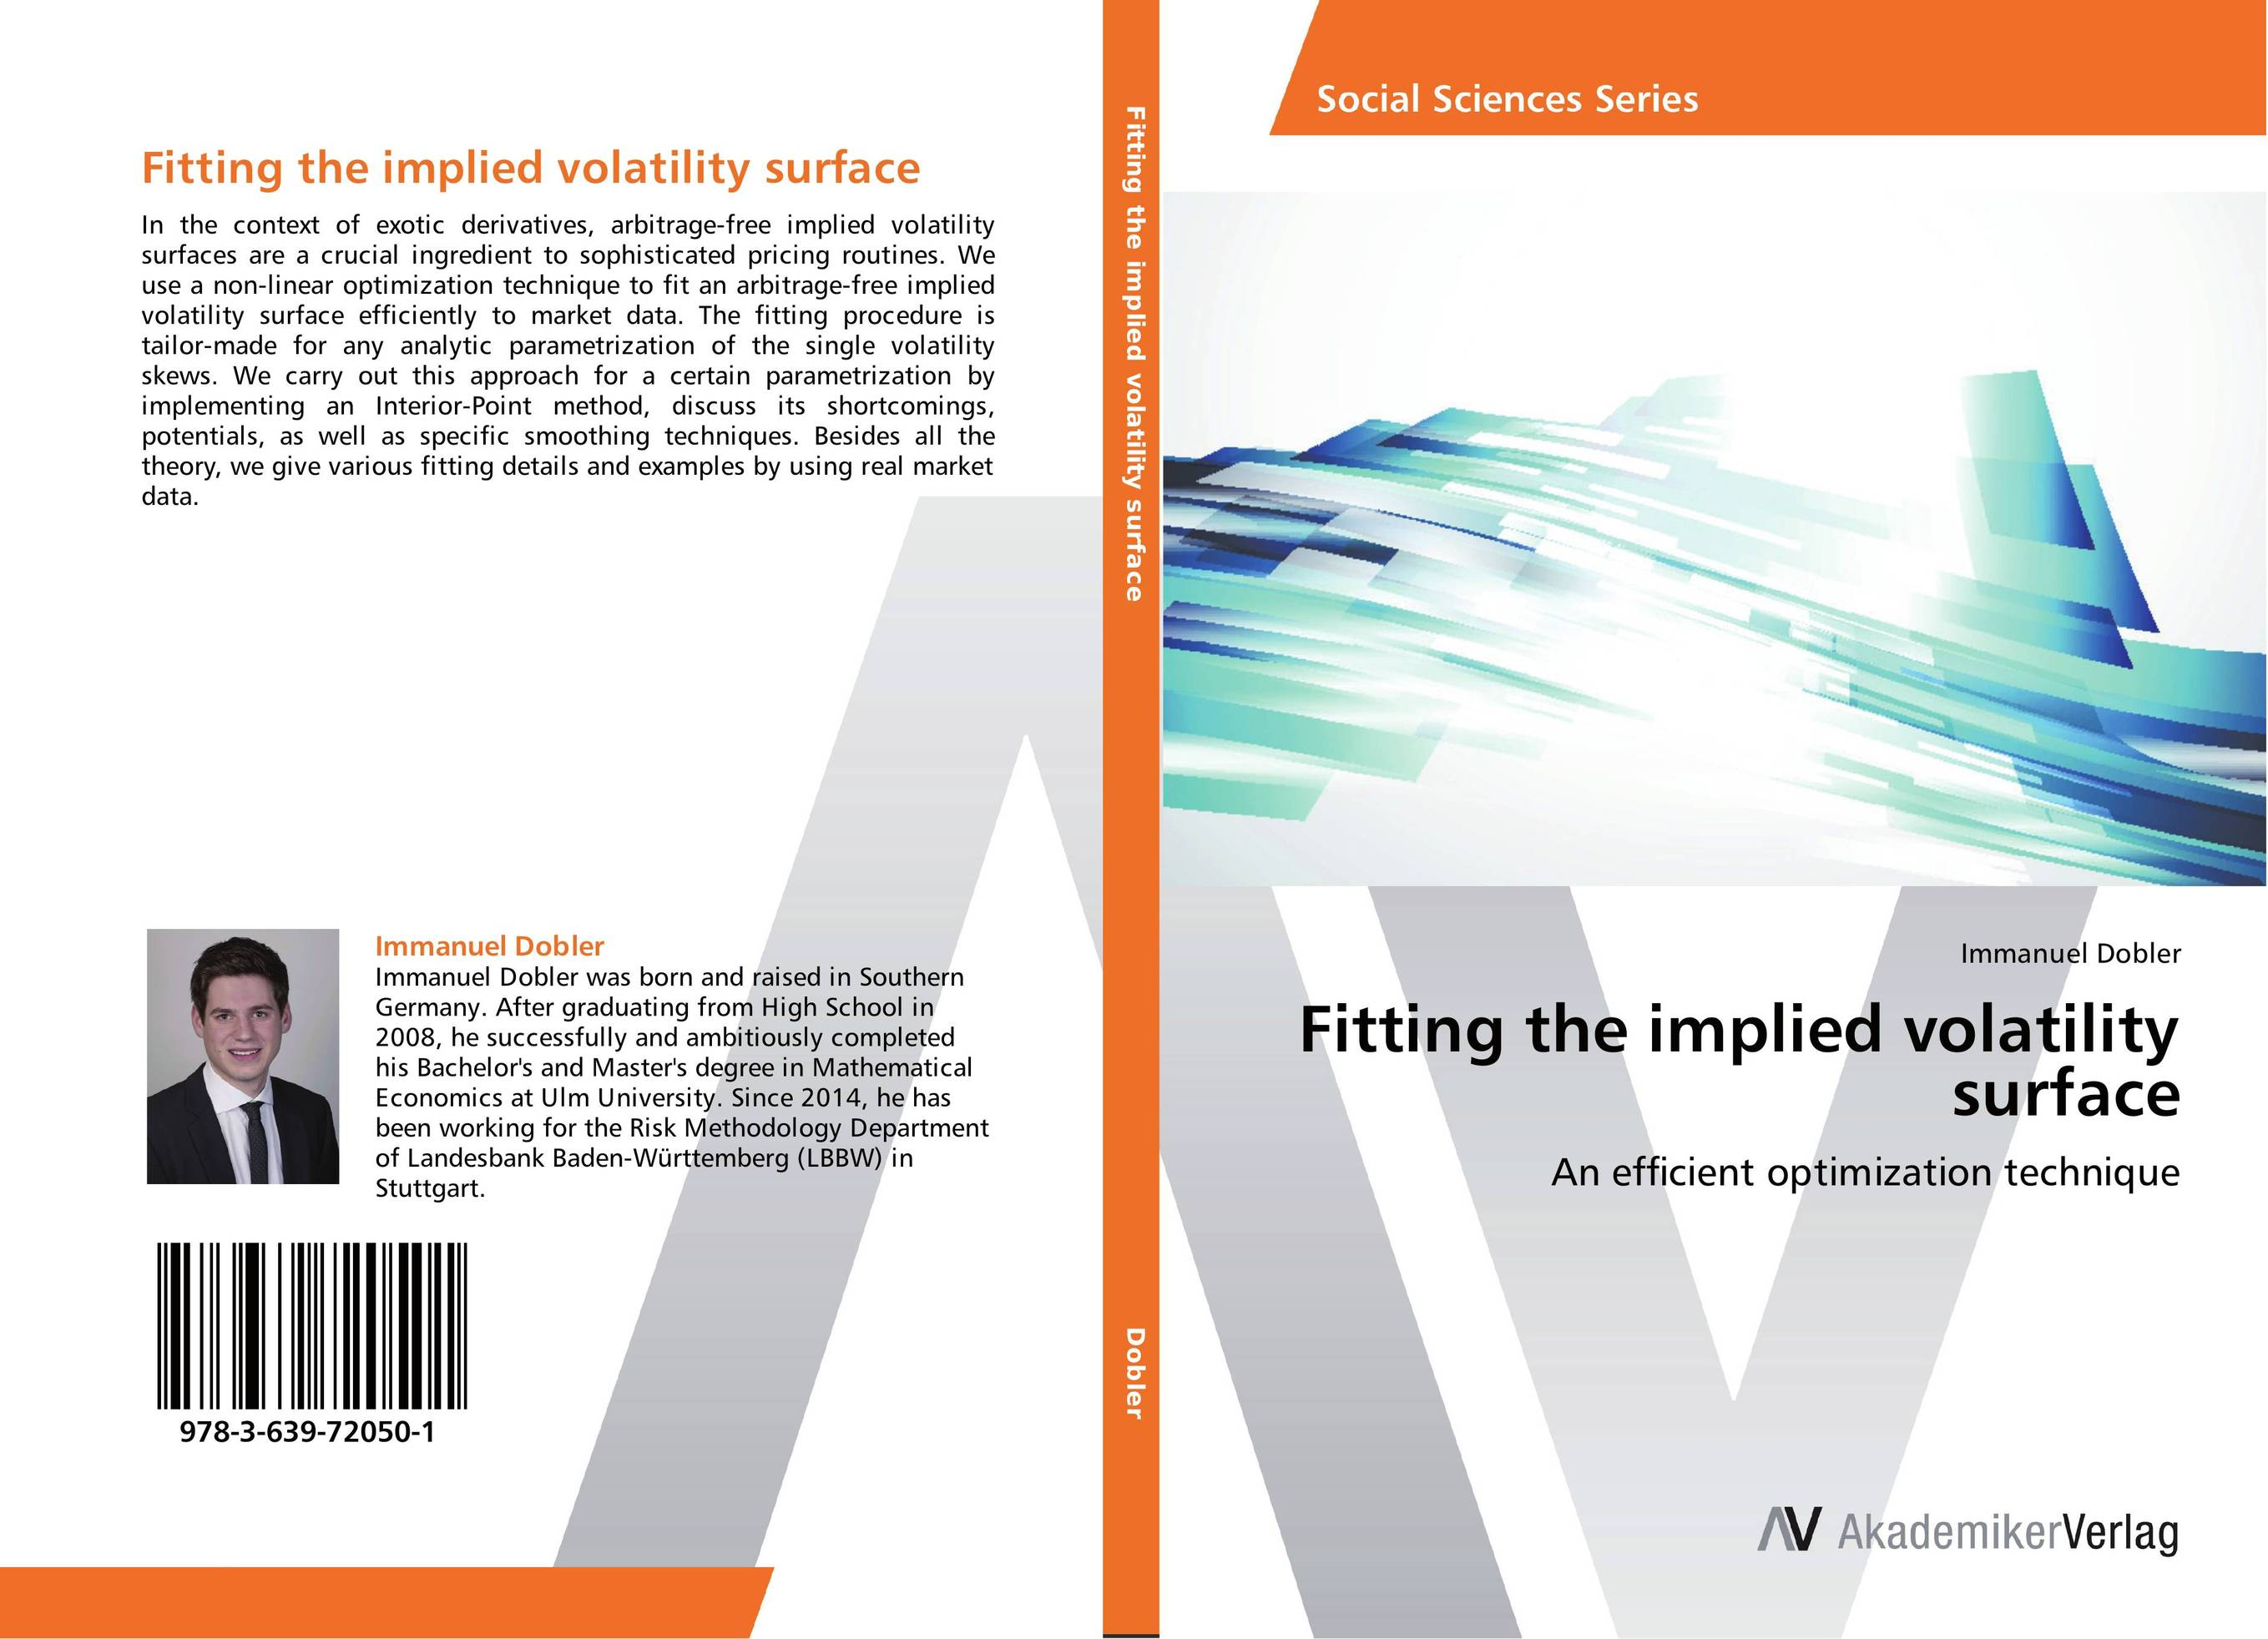 Fitting the implied volatility surface thomas kirchner merger arbitrage how to profit from global event driven arbitrage